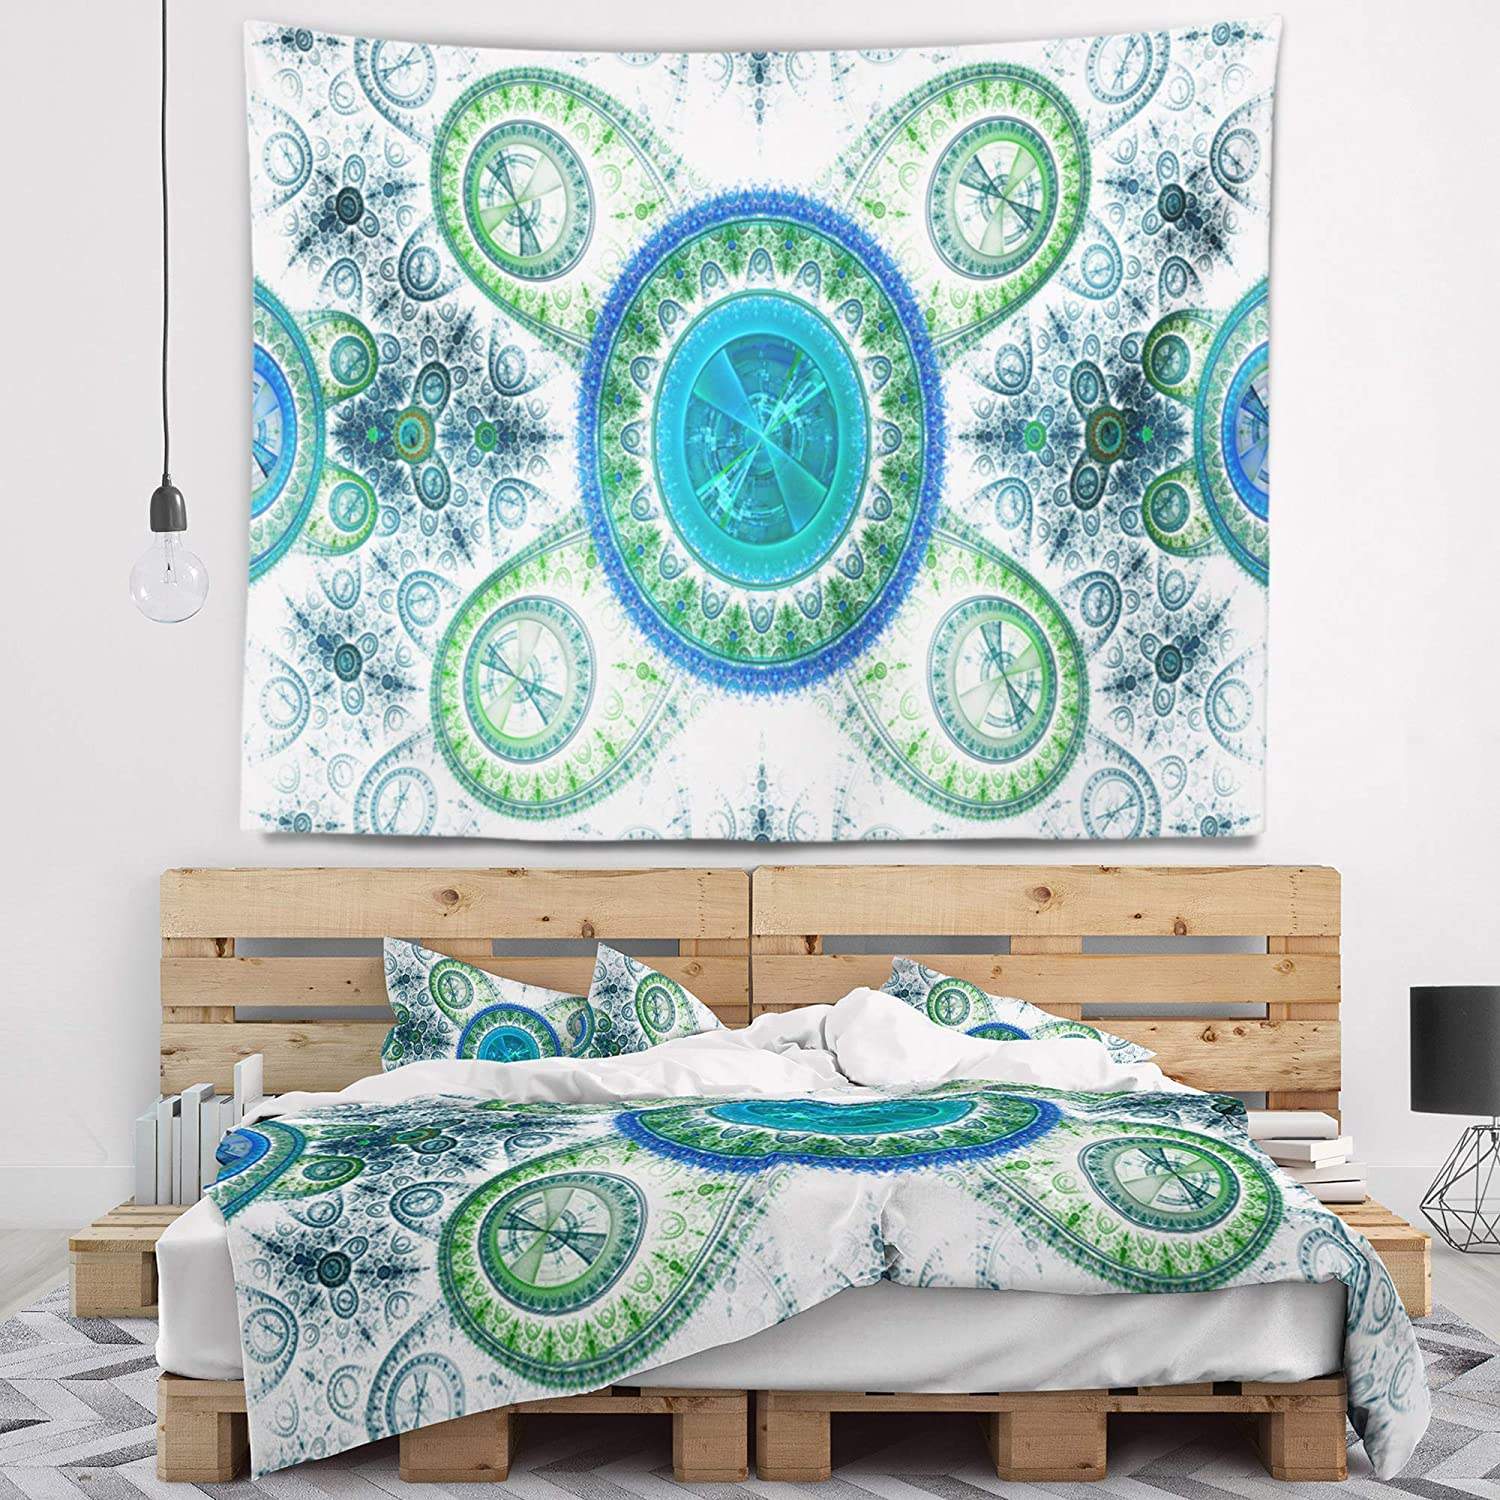 Designart TAP16328-80-68 'Blue Psychedelic Relaxing Abstract Blanket Décor Art for Home and Office Wall Tapestry, XL: 80' x 68', Created on Lightweight Polyester Fabric